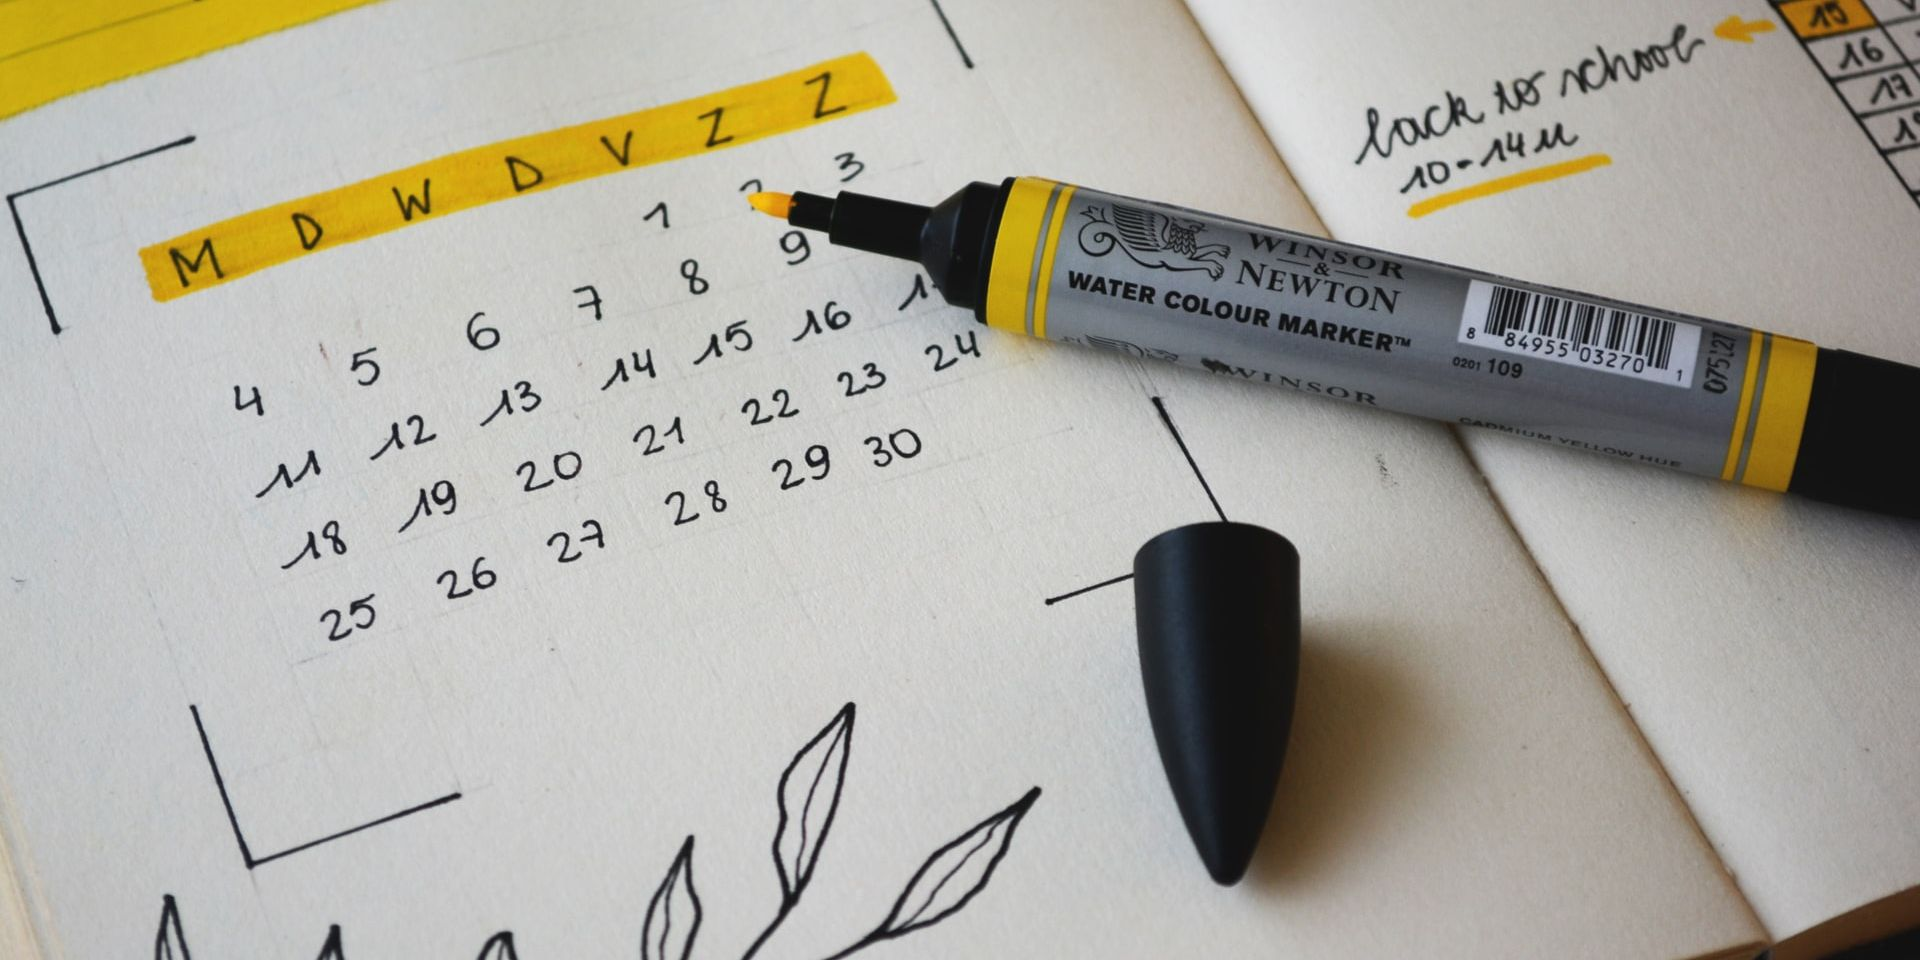 Cover Image for Calendar vs. To-Do List - Which System is Better For You?